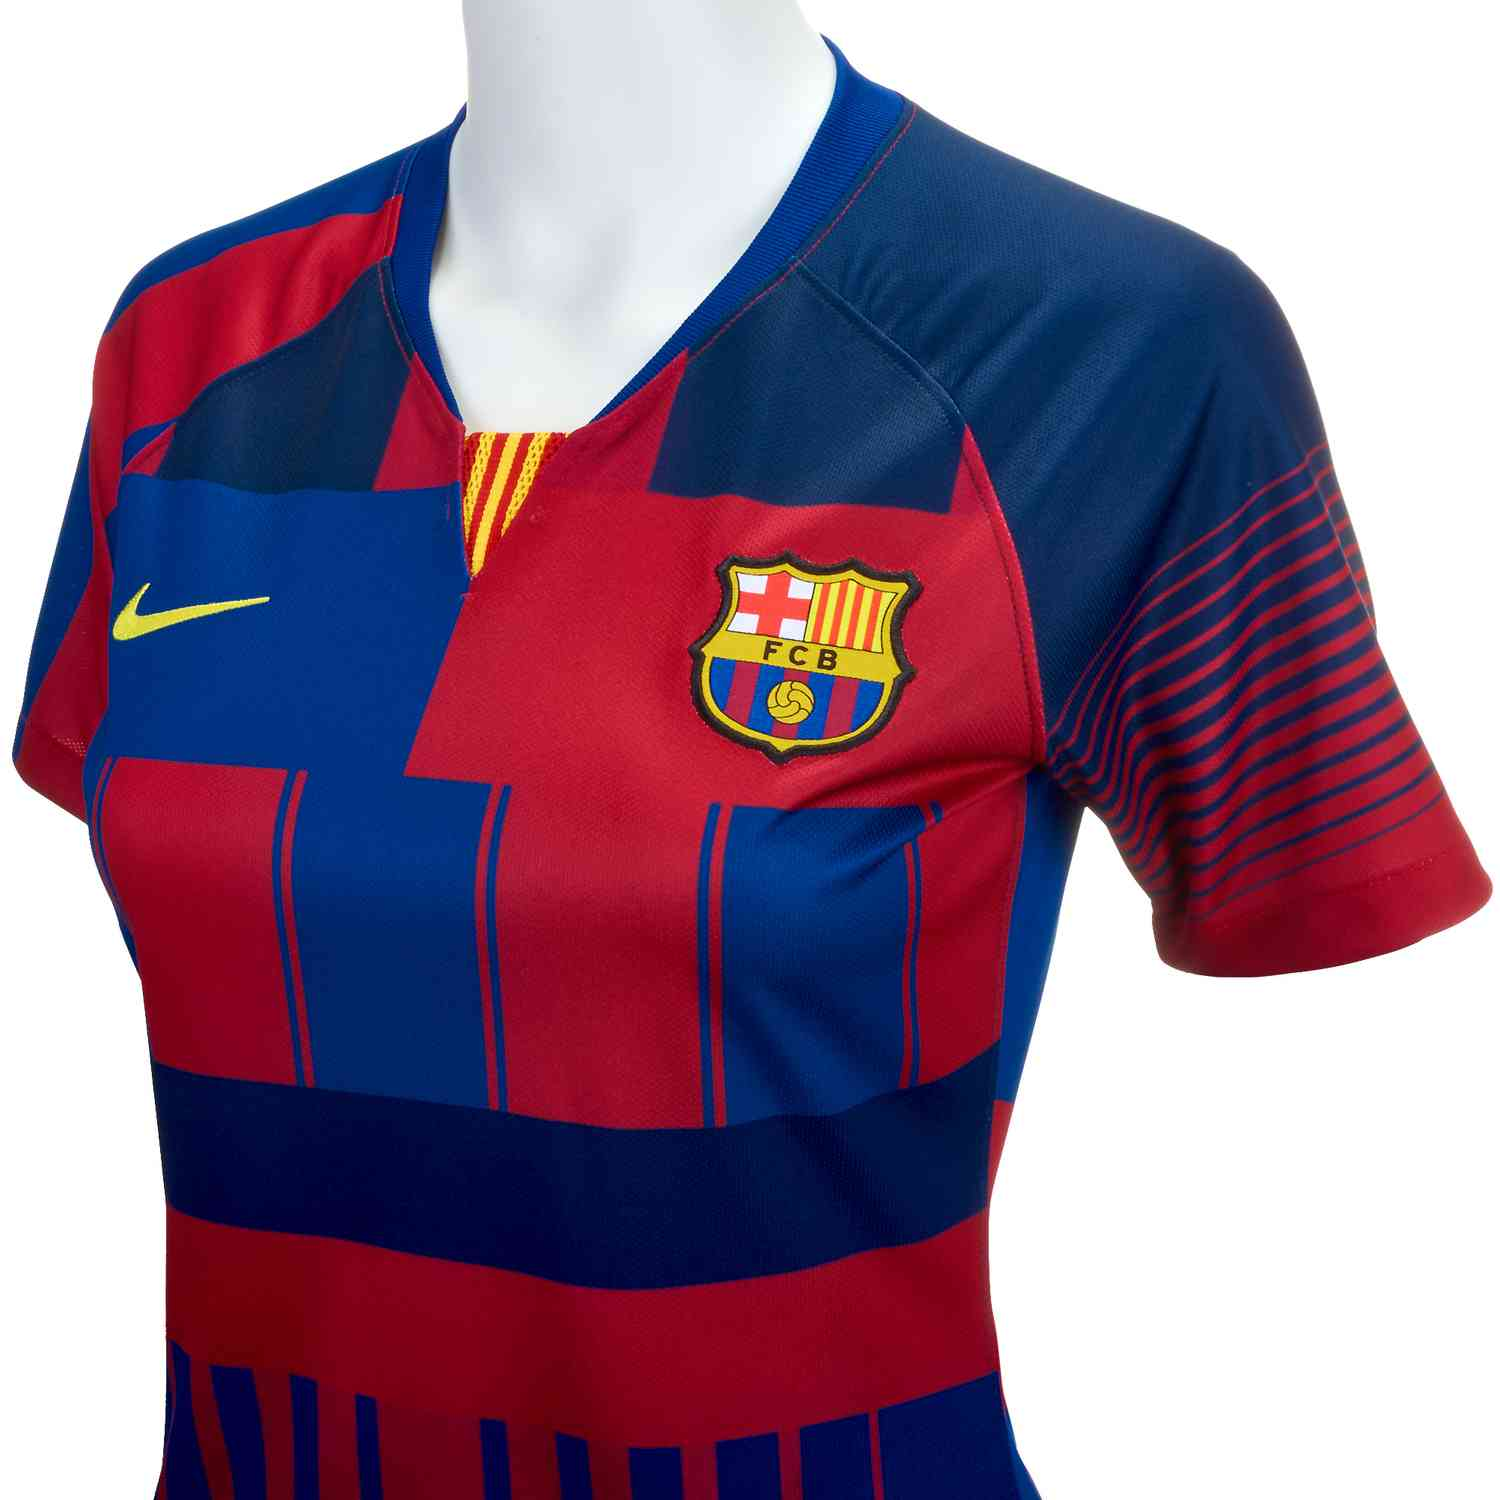 low priced 2ad26 1f35c Nike and Barcelona 20th Anniversary Home Jersey - Womens - SoccerPro